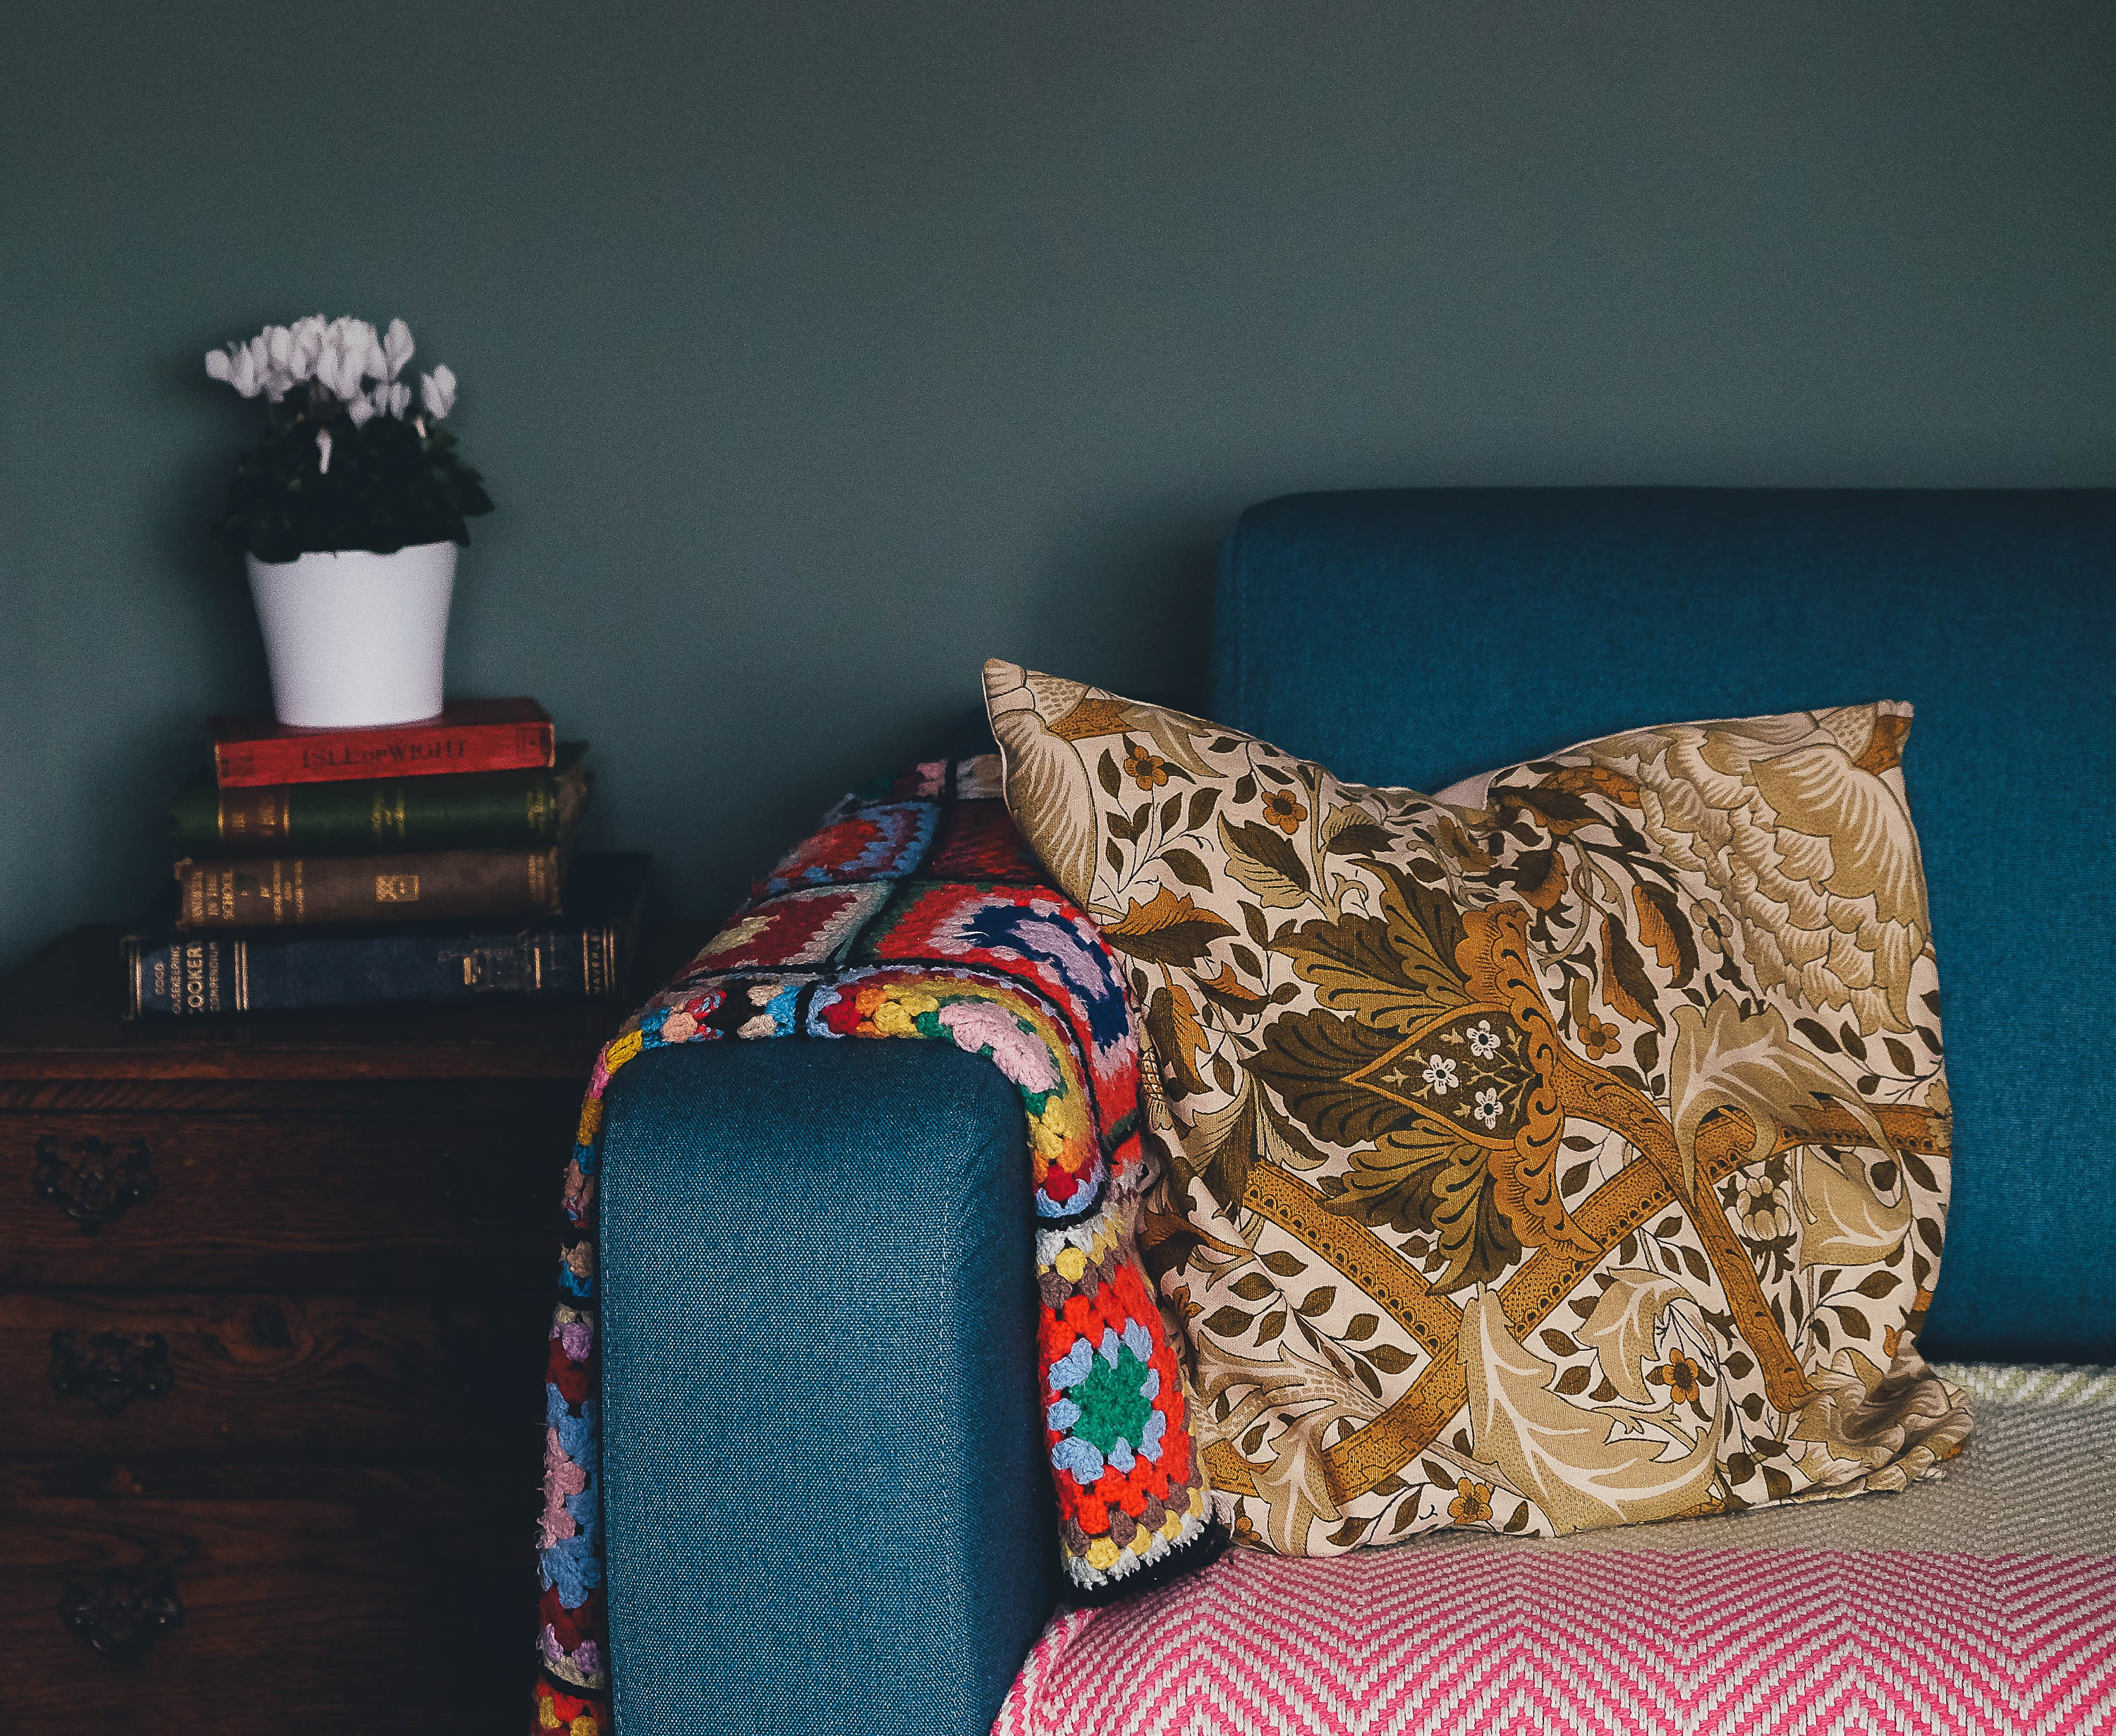 Sofa, pude, indian, style, bolig, boligindretning. (Foto: Unsplash)